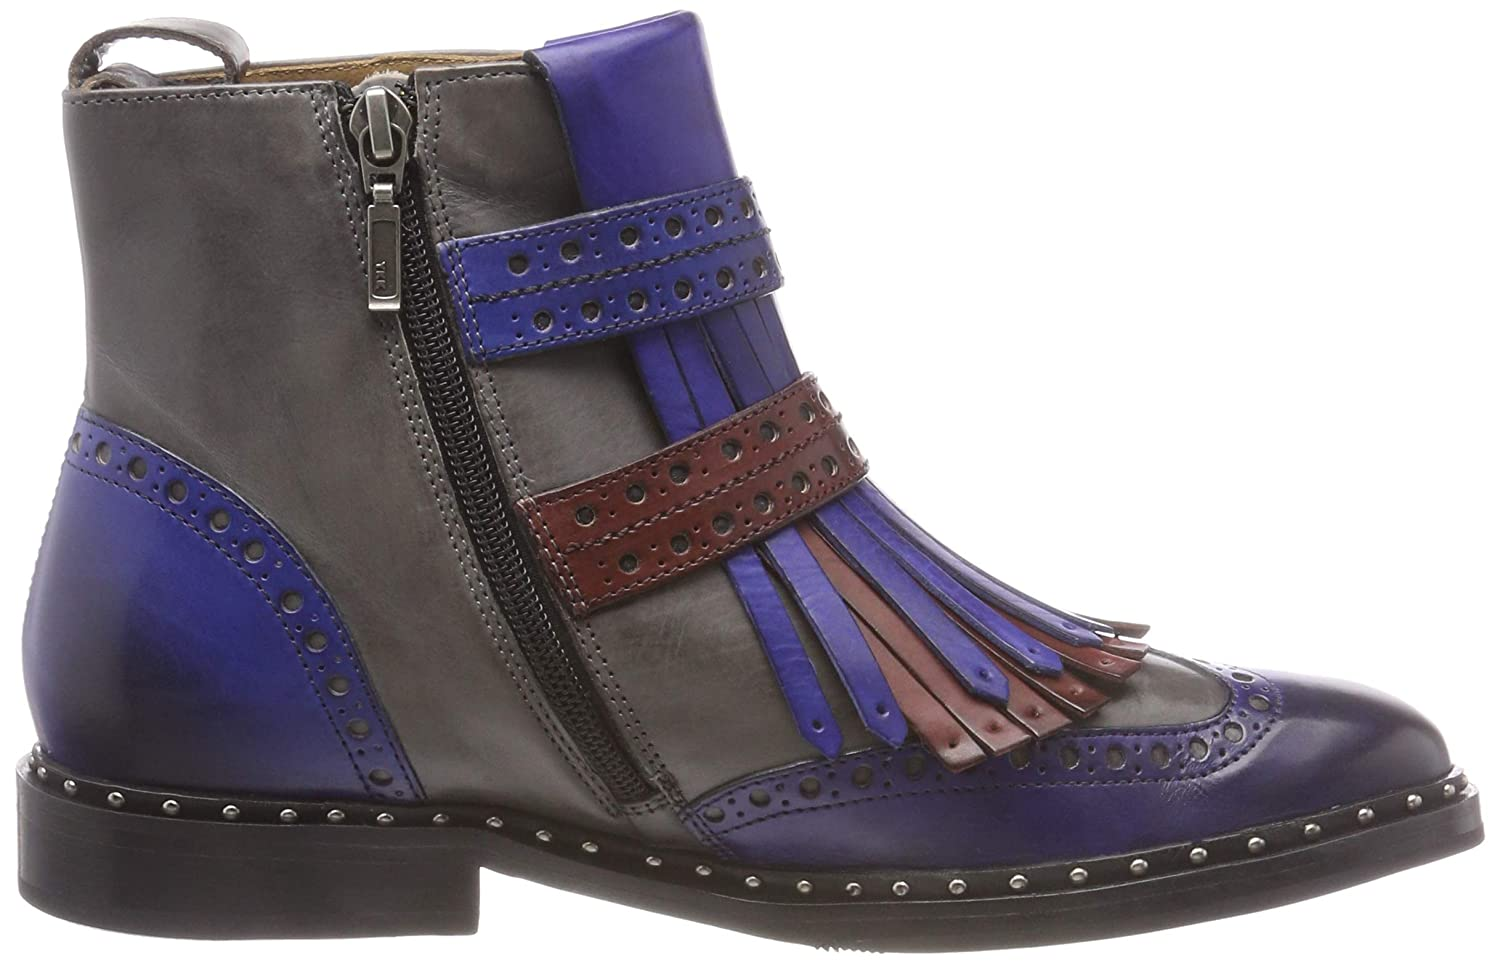 MELVIN & HAMILTON MH HAND MADE schuhe OF Stiefel CLASS Damen Sally 93 Chelsea Stiefel OF ccea69